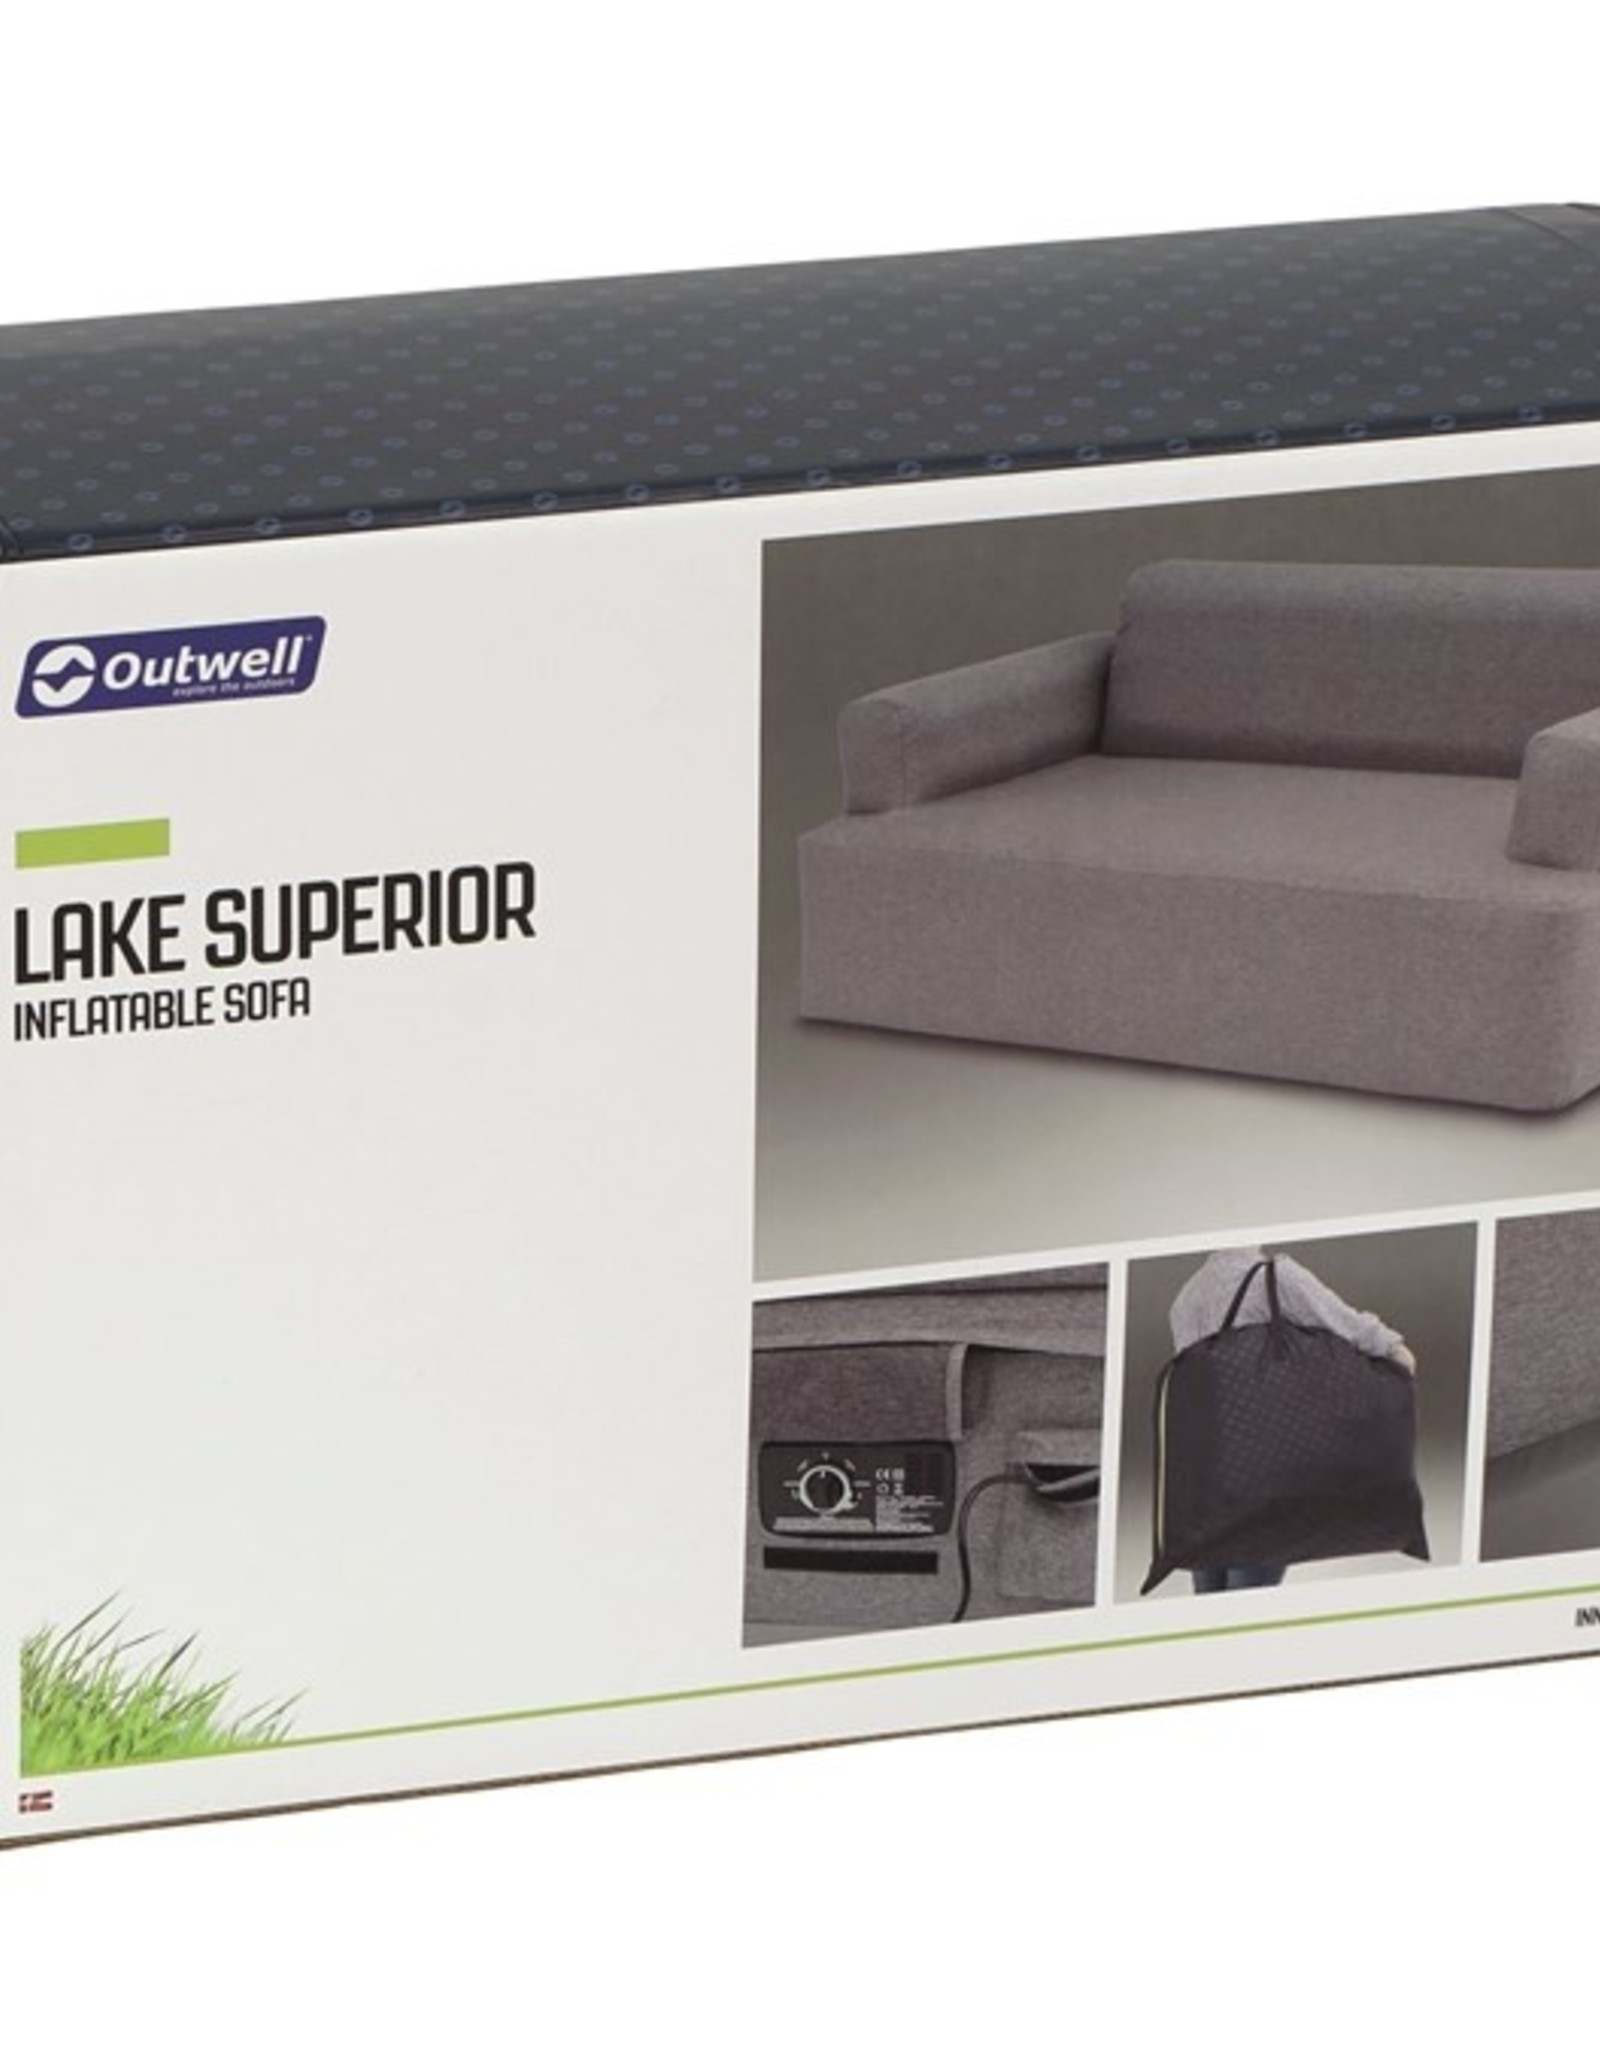 Outwell LAKE SUPERIOR INFLATABLE SOFA OUTWELL